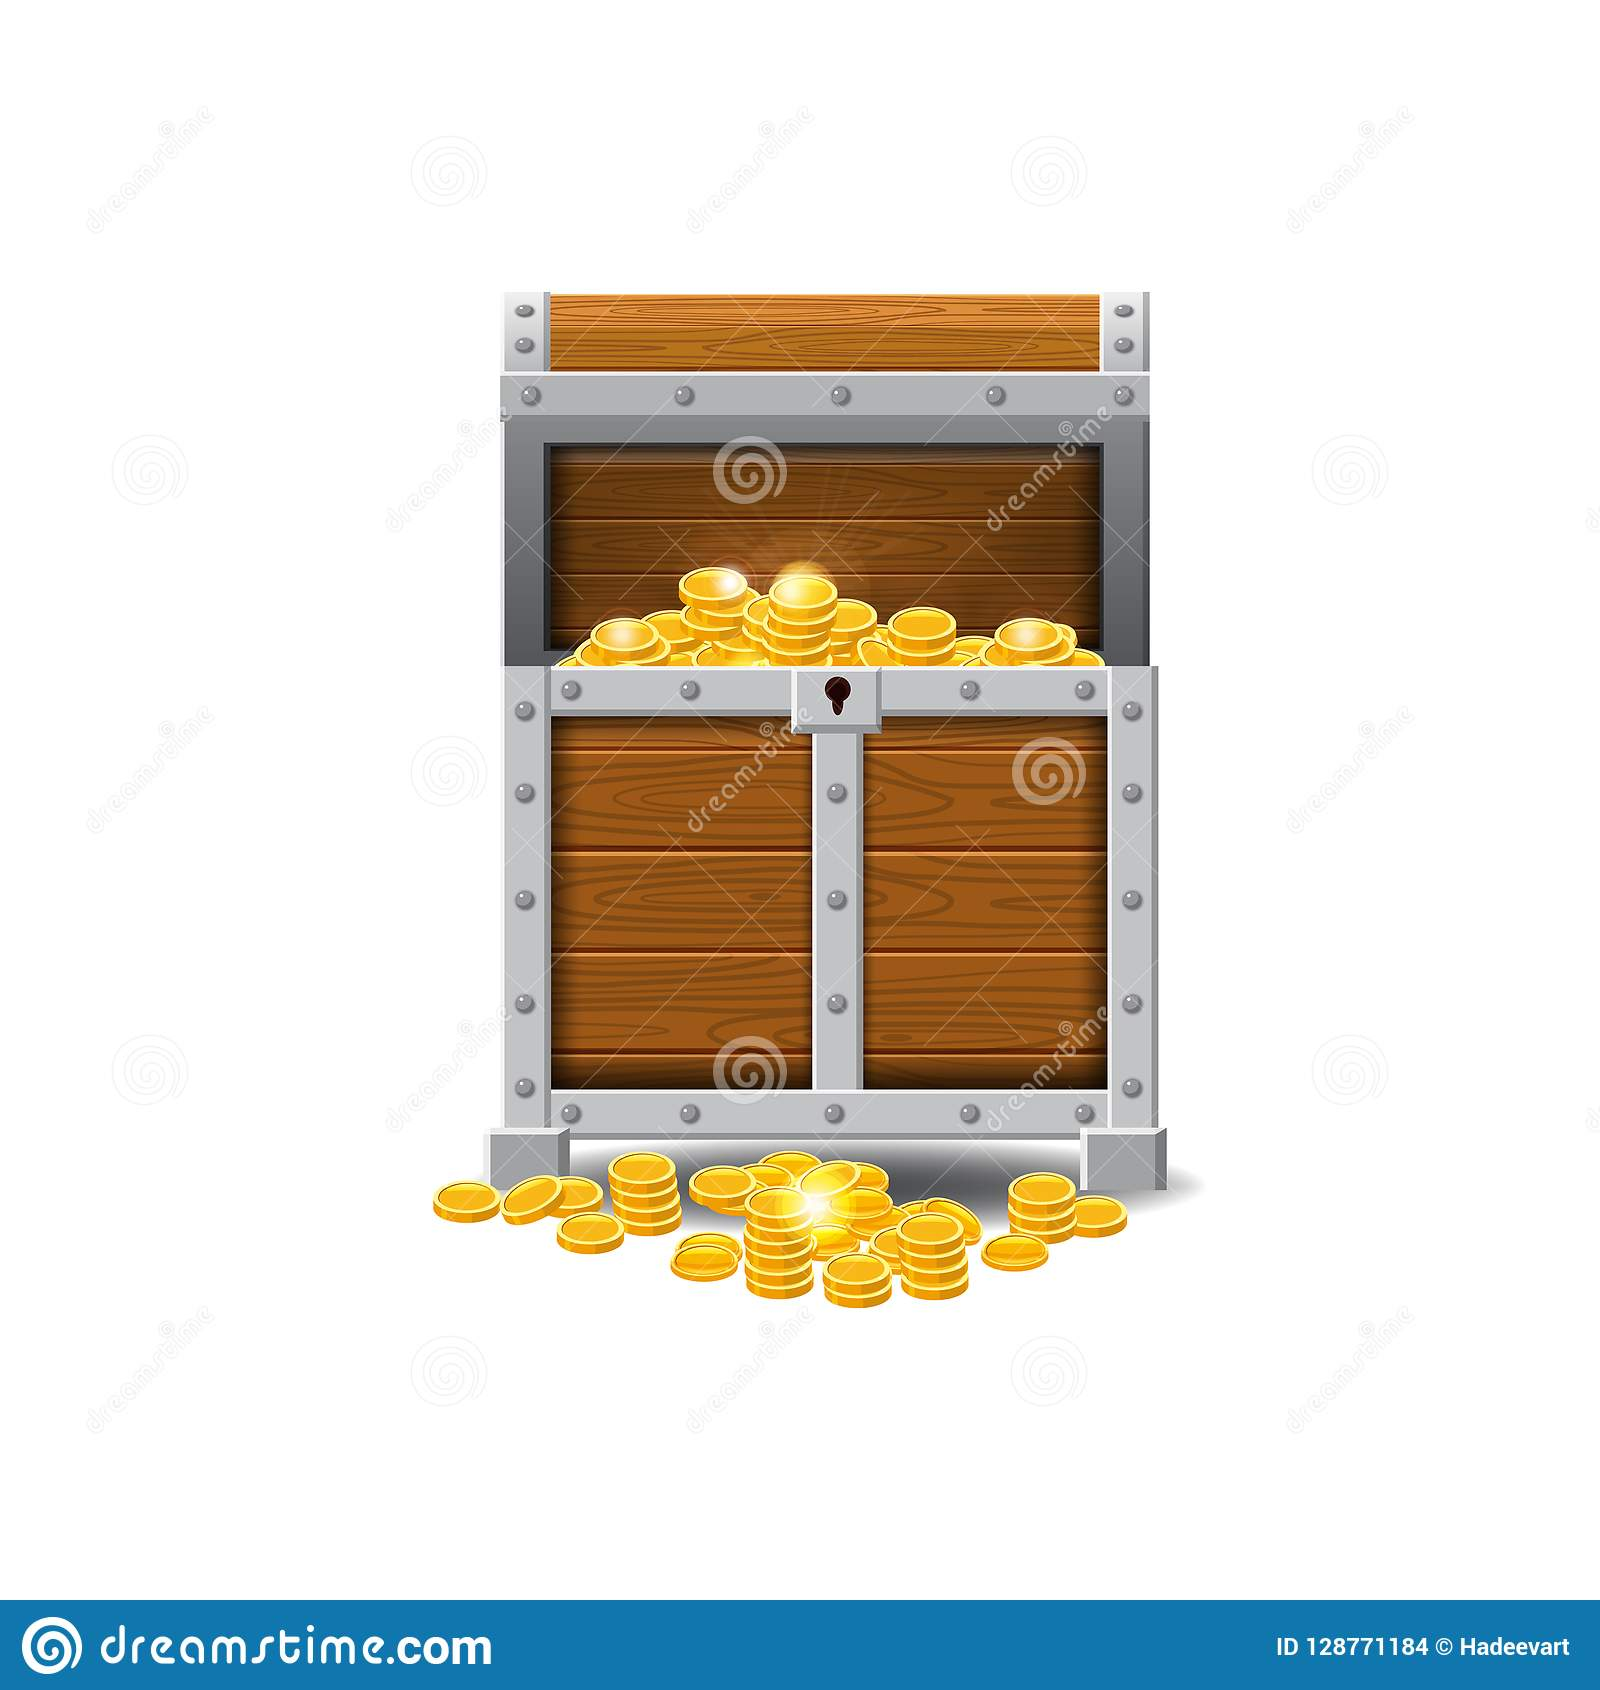 Wooden old pirate chests, full of treasures, gold coins, treasures, vector, cartoon style, illustration, isolated. For